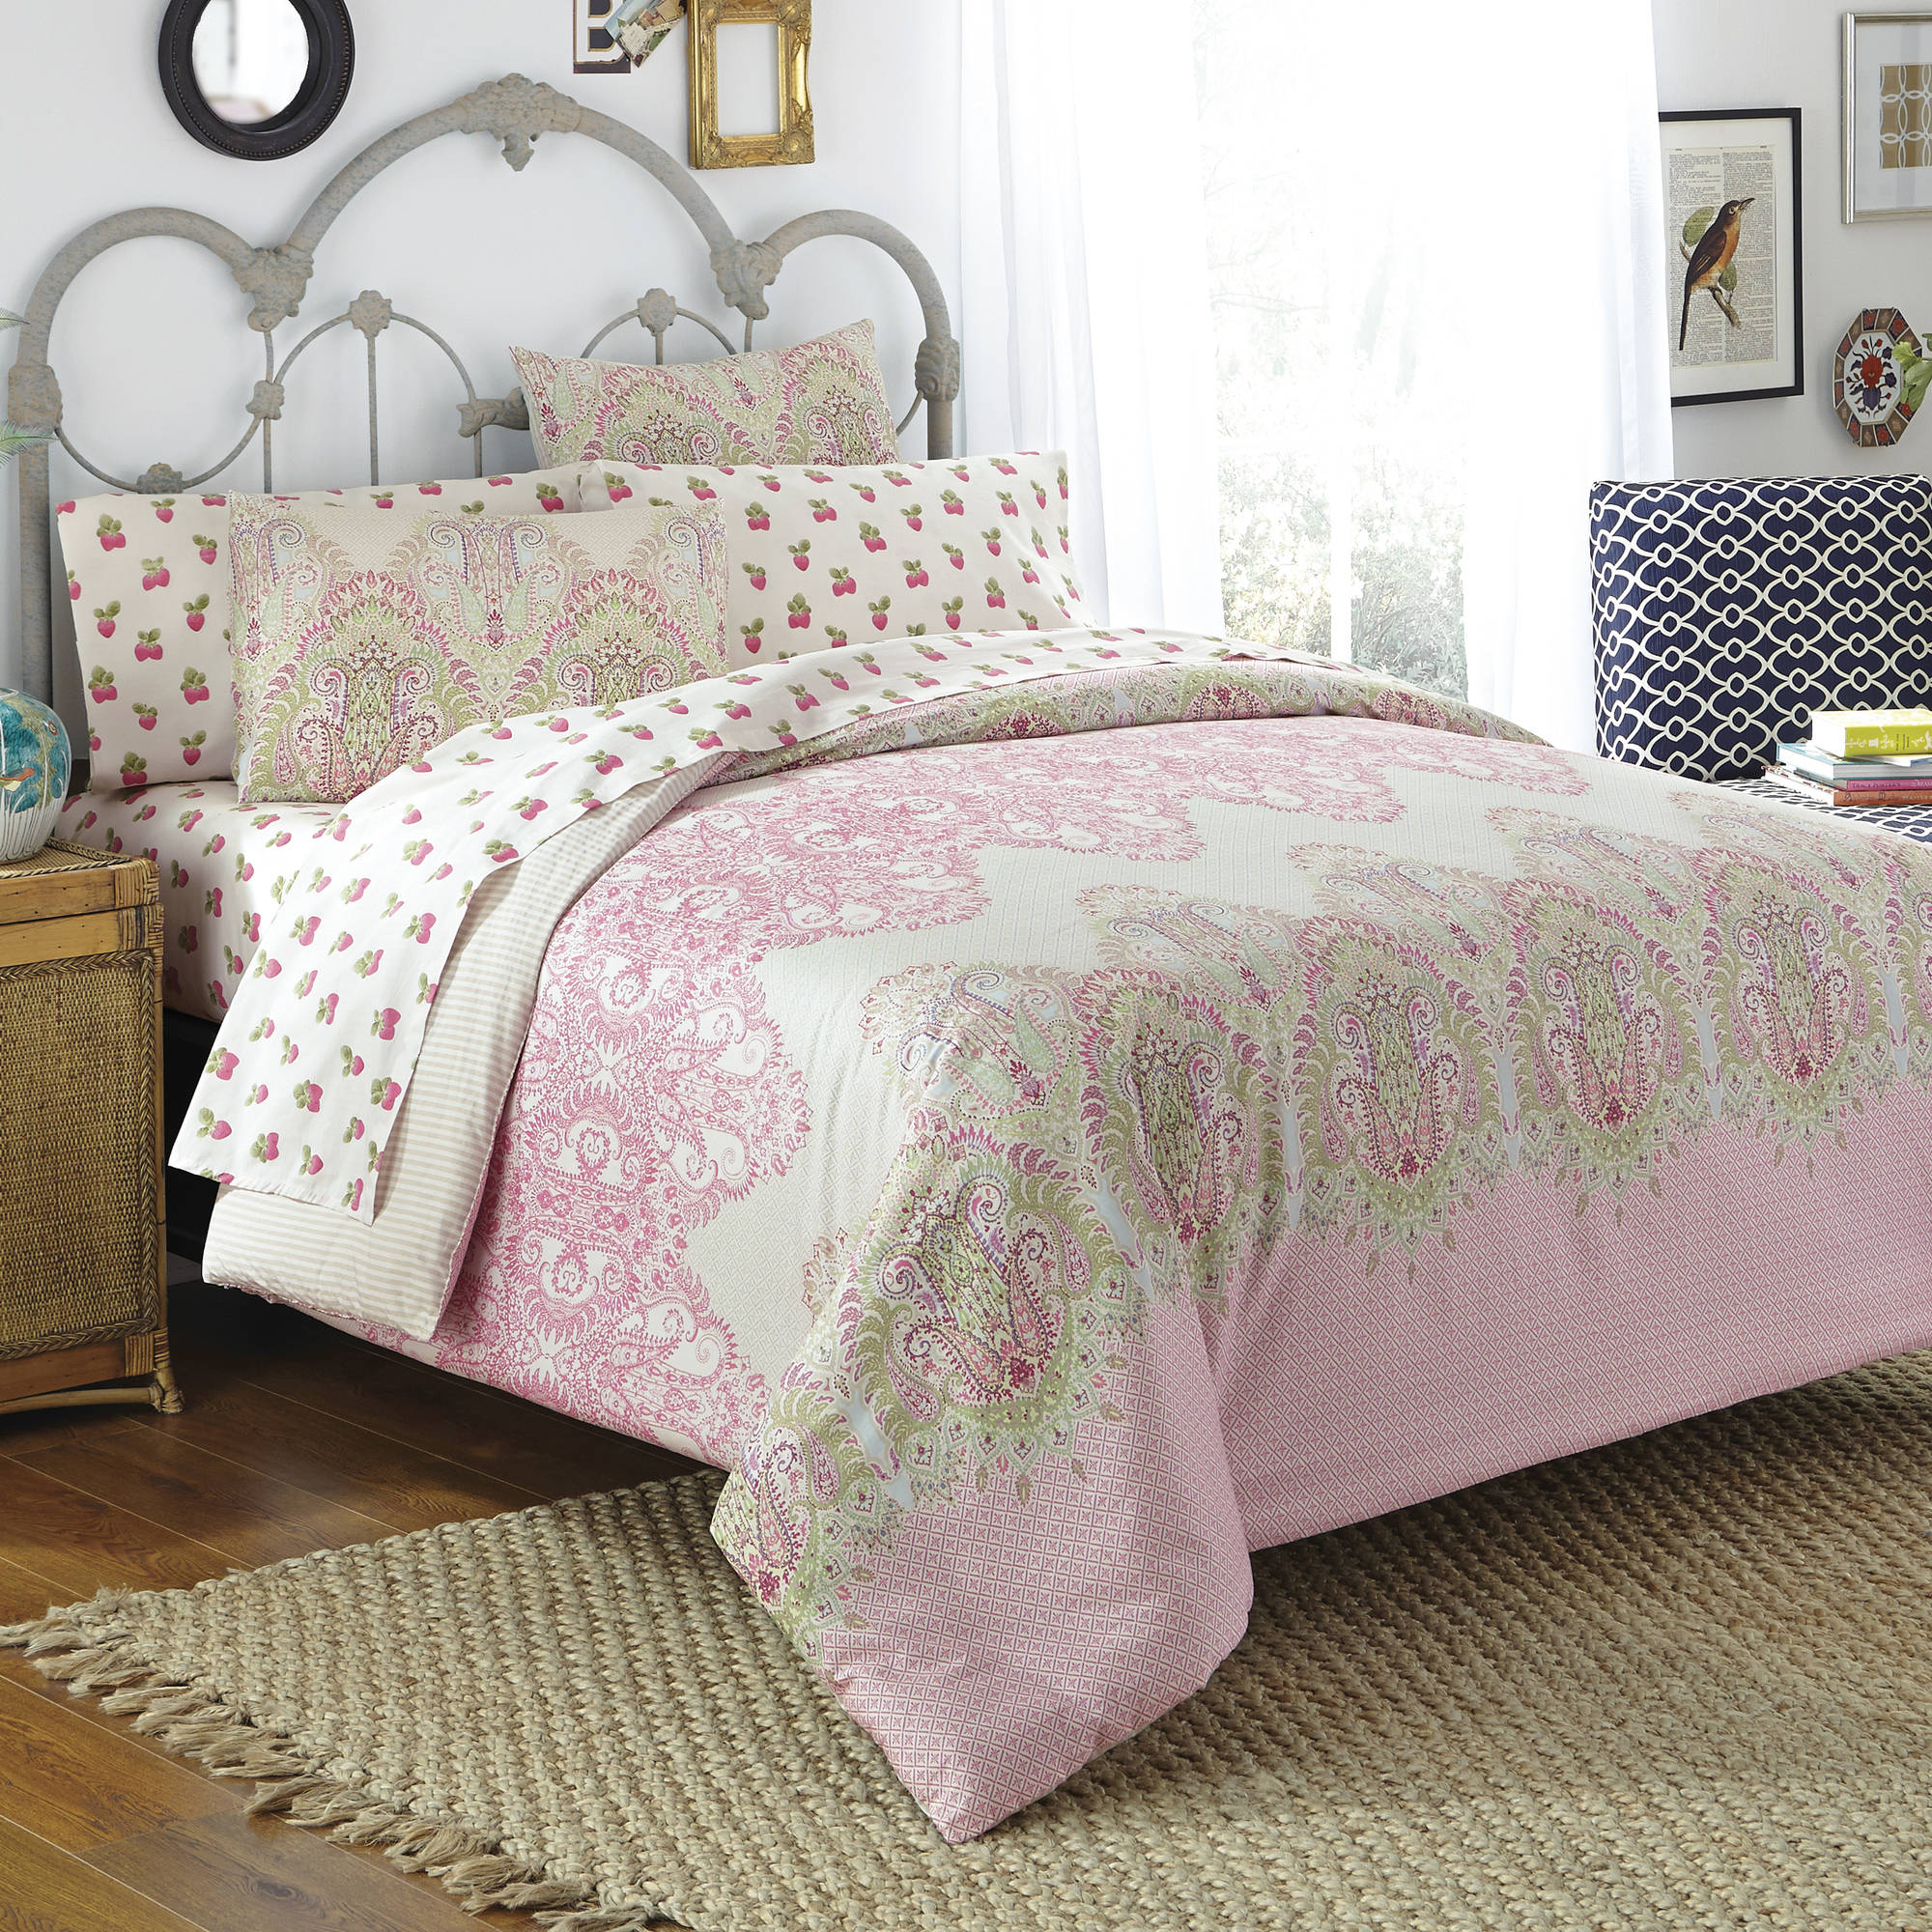 Free Spirit Victoria Bed in a Bag Bedding Comforter Set